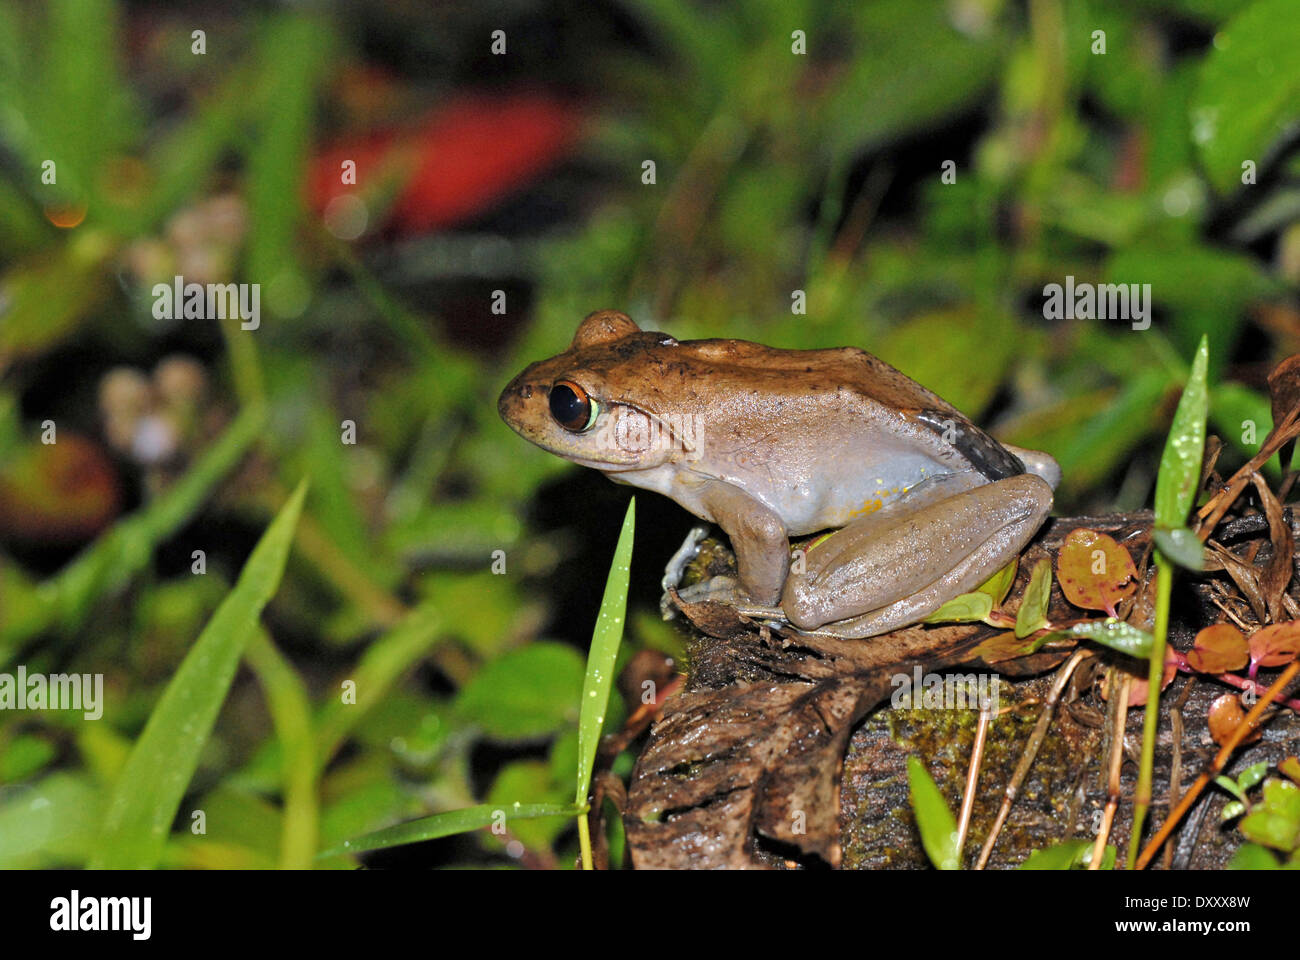 Madagascan tree frog (Boophis madagascariensis). The species is sometimes known as the Madagascan dagger frog. Stock Photo